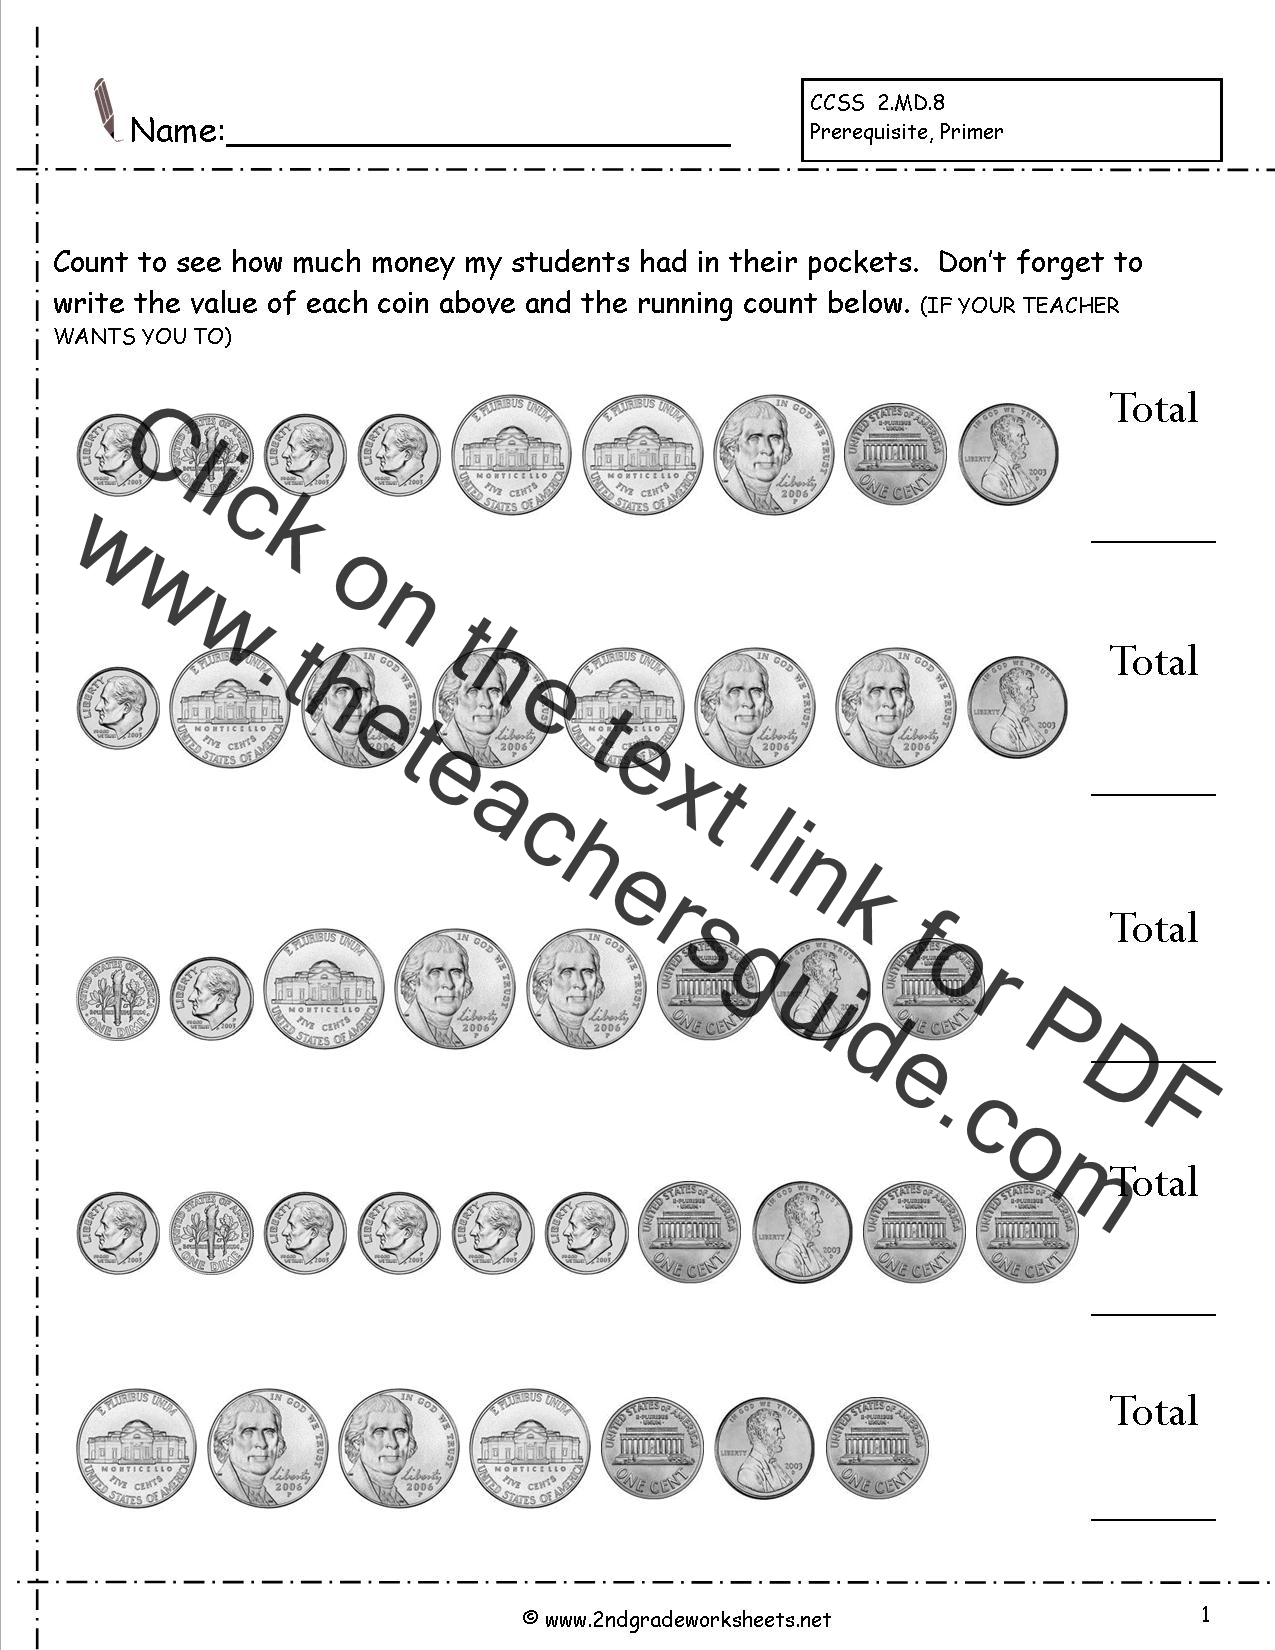 math worksheet : free math worksheets and printouts : Math Worksheets For 2nd Grade Free